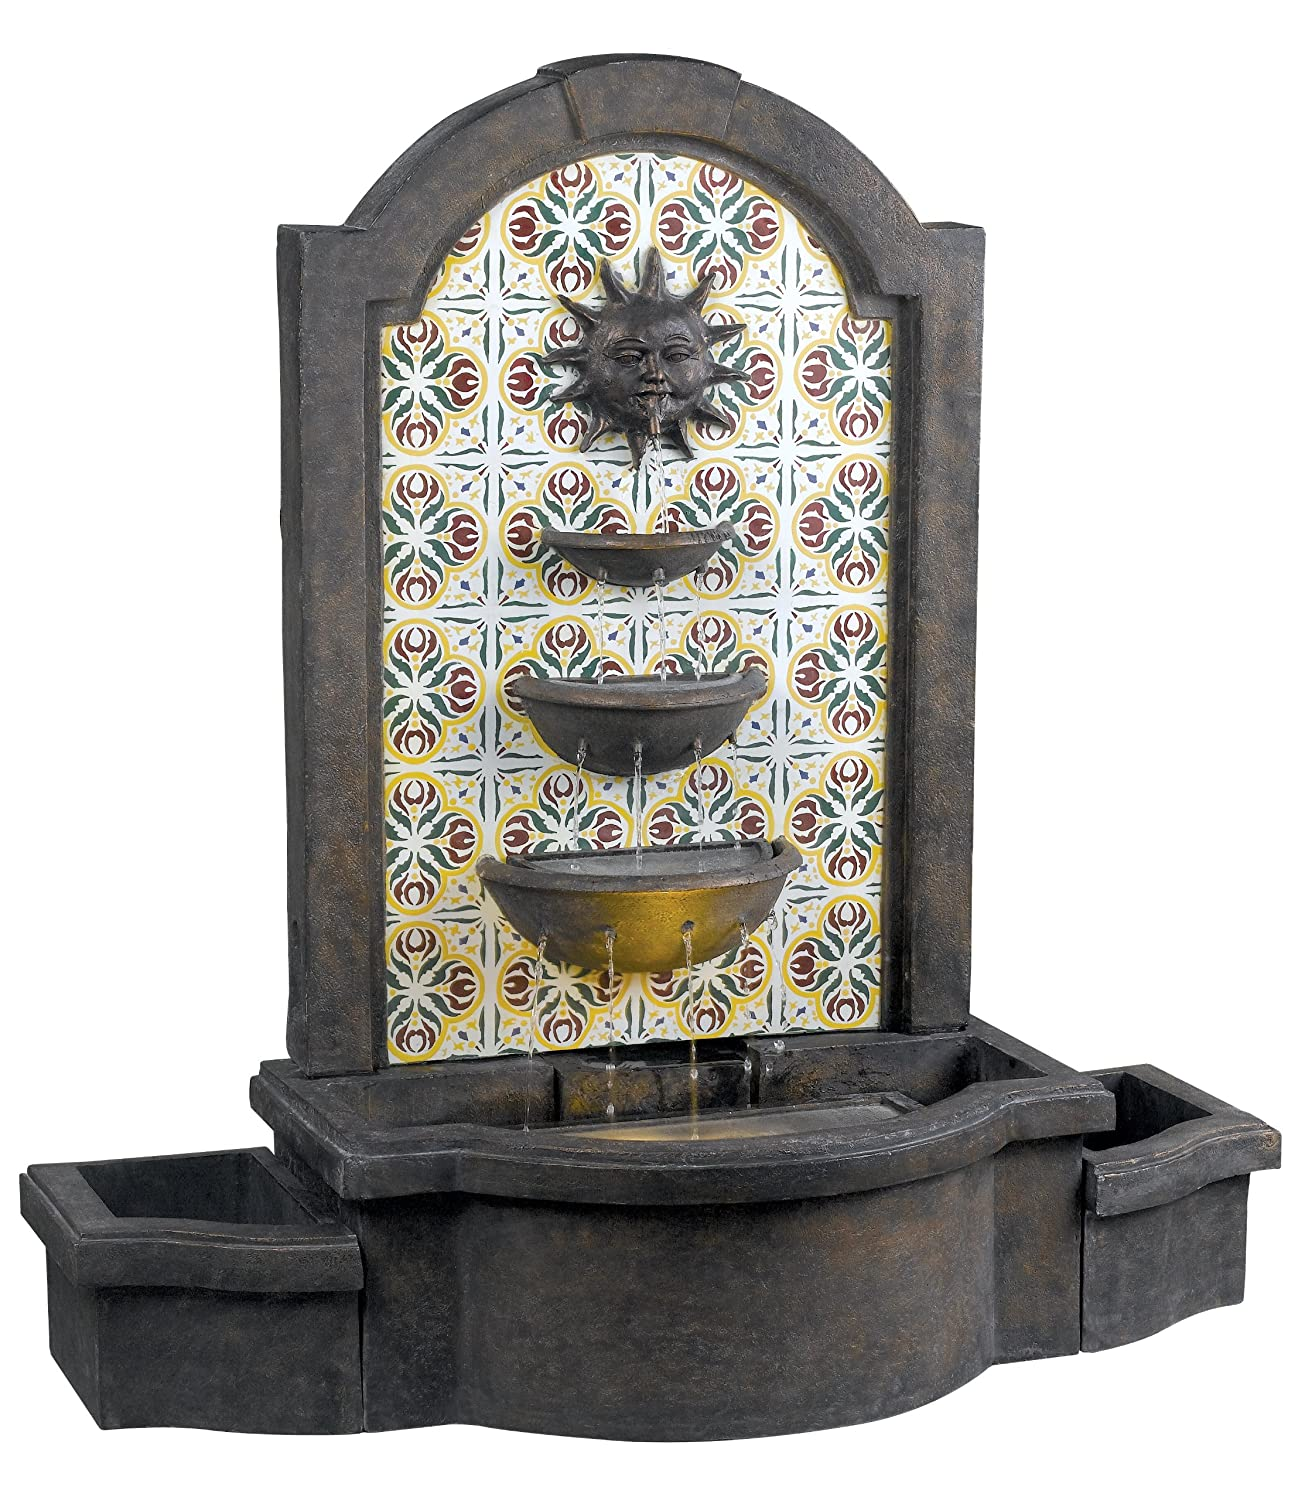 Amazon kenroy home 50721md cascada indooroutdoor floor amazon kenroy home 50721md cascada indooroutdoor floor fountain in madrid finish with patterned tile motif home kitchen workwithnaturefo